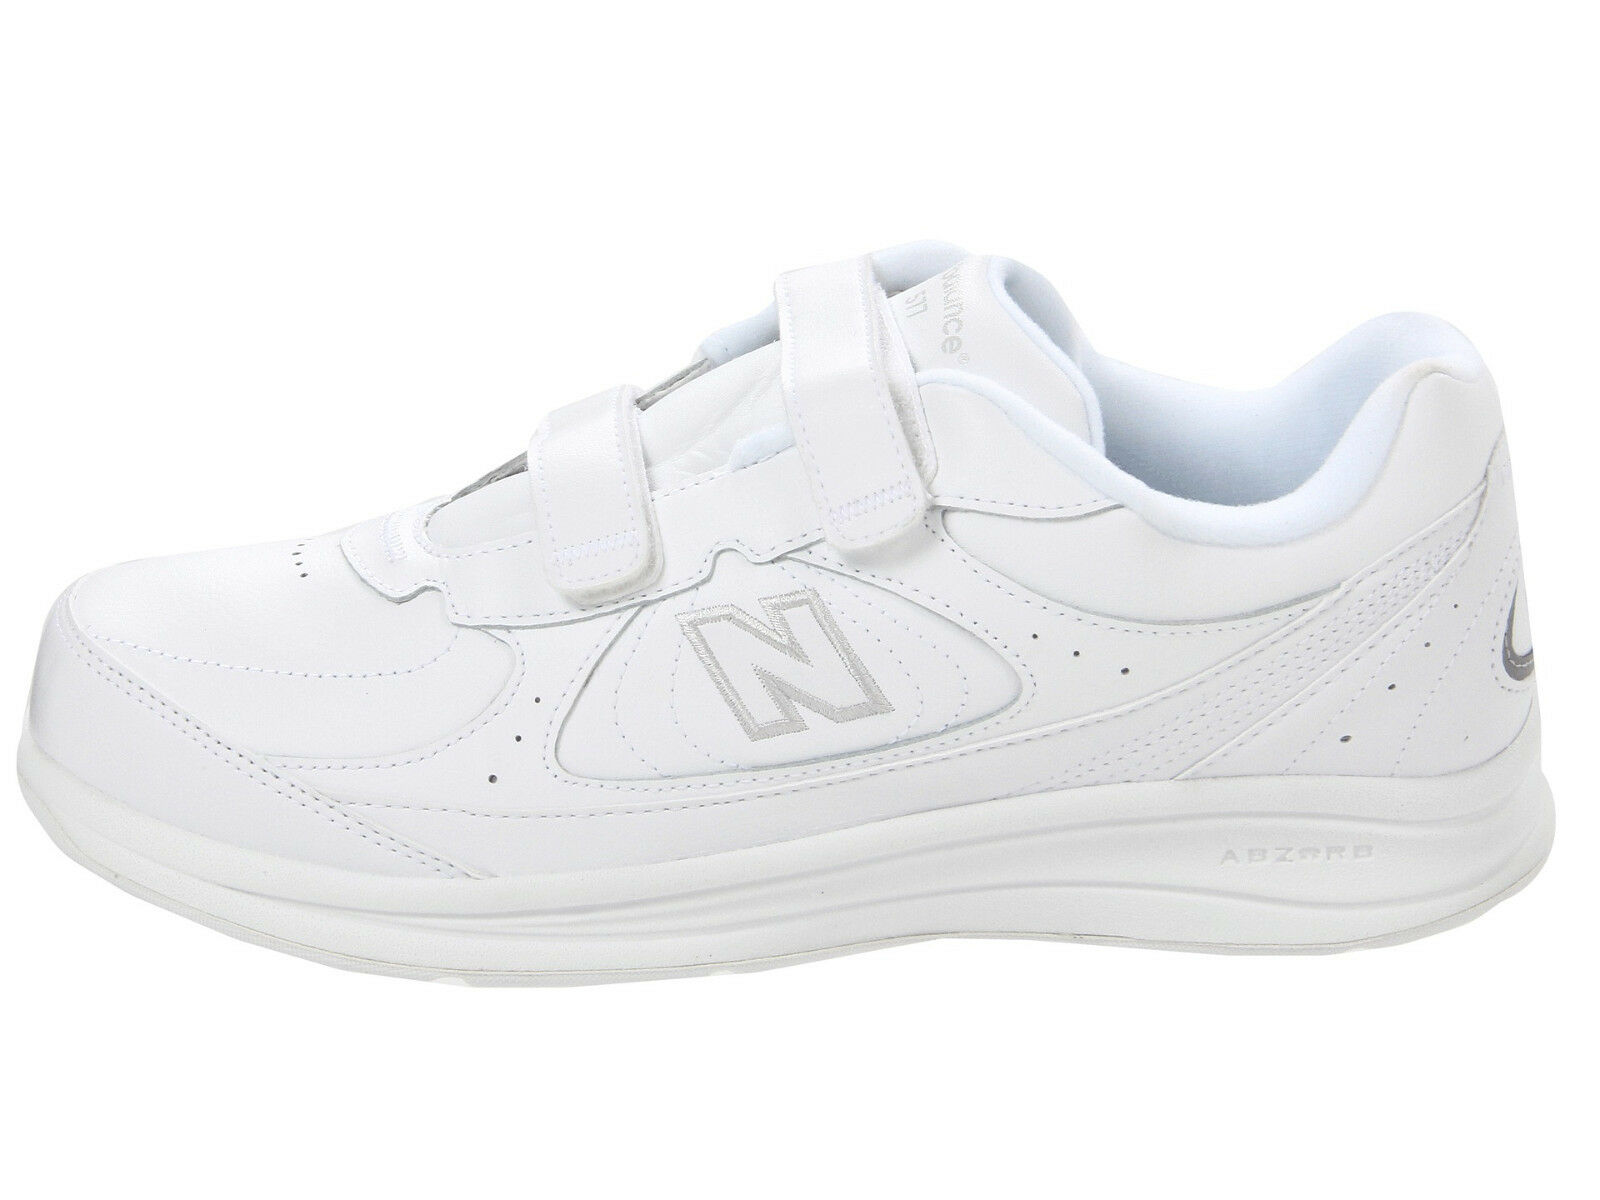 Men Men Men New Balance MW577VW Walking Wide 2E Leather White 100% Authentic Brand New dd20c8